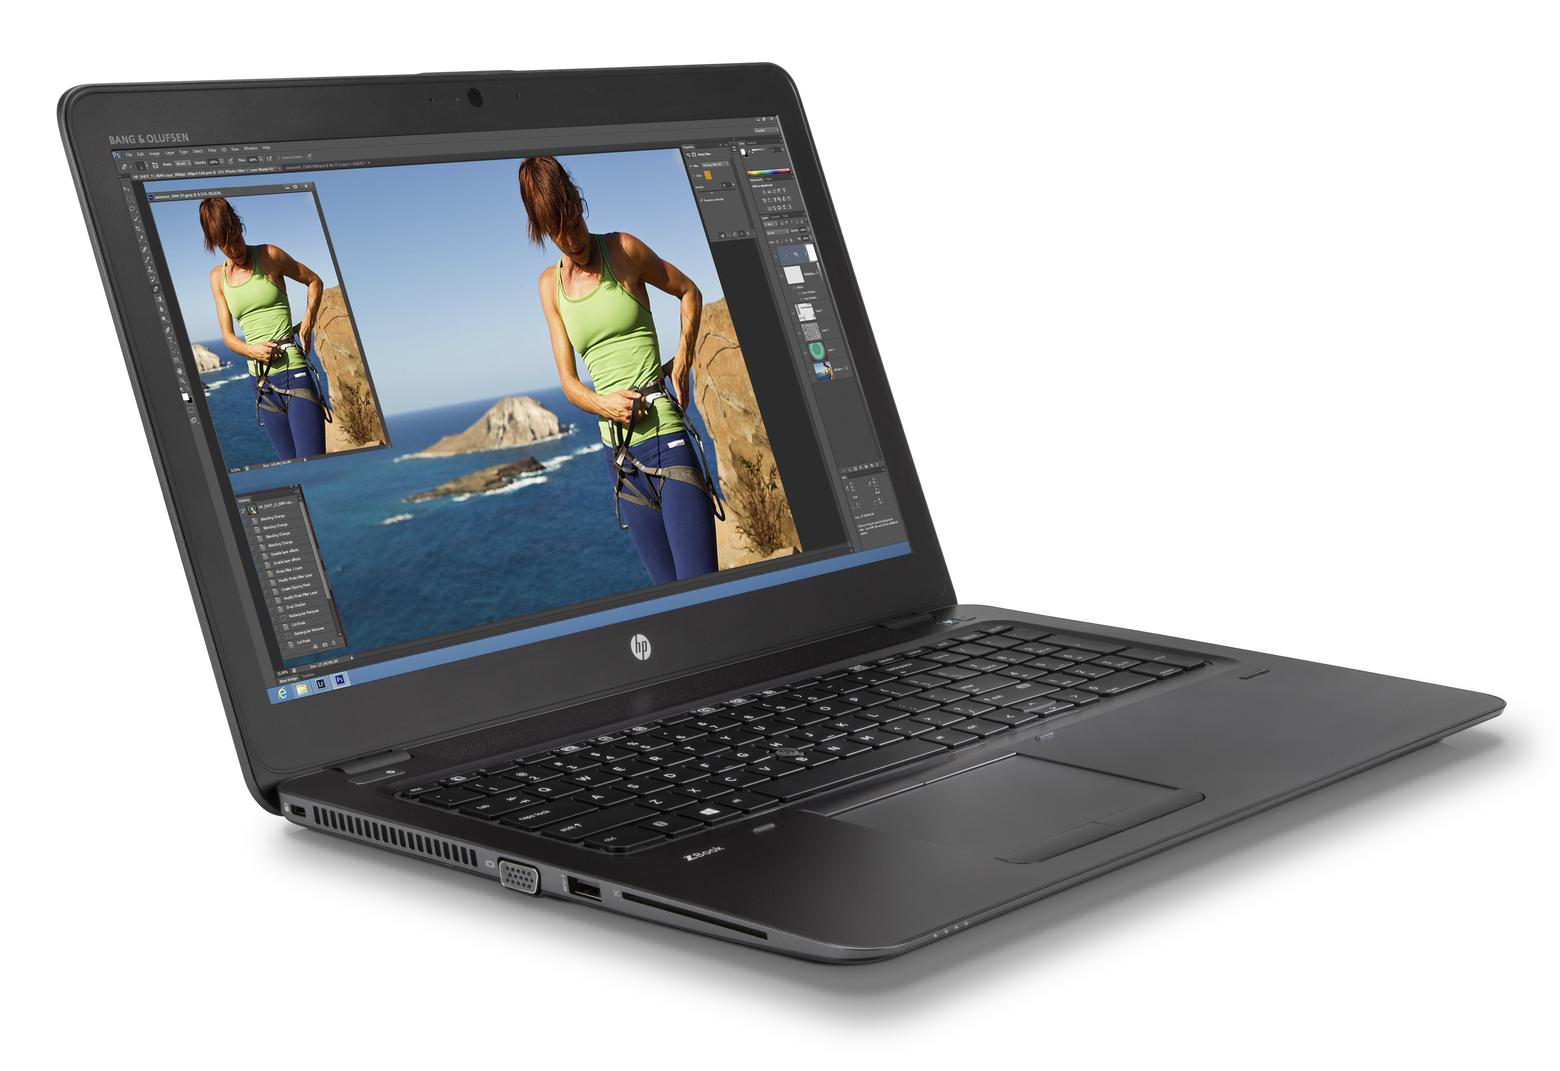 "HP ZBook 15U G3 MOBILE WORKSTATION i7-6500U 15.6"" 8/1000/TOUCHSCREEN/BT/Win10 Pro/WEBCAM/AMD FirePro W4190M/FP Reader/Backlit Keyboard/1920x1080 (V1H65UTR#ABA)"